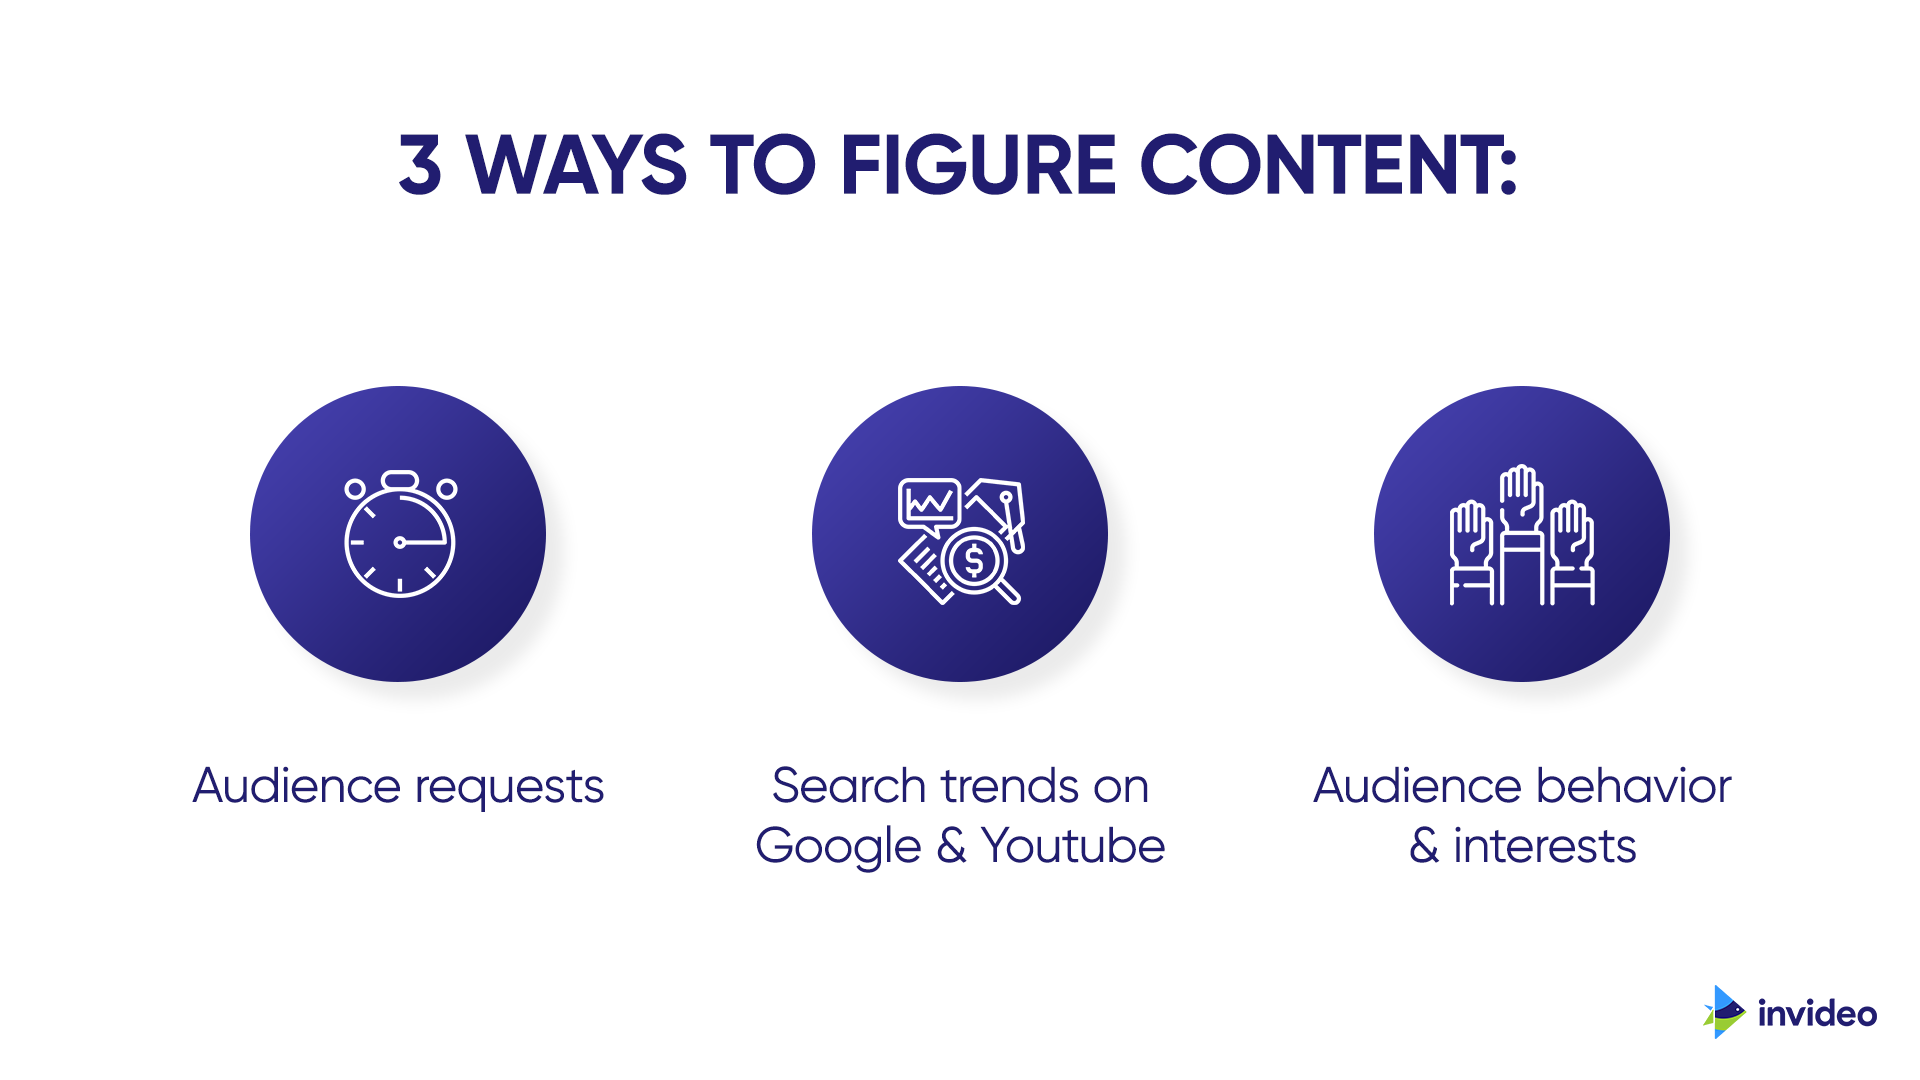 3 Ways To Figure Content